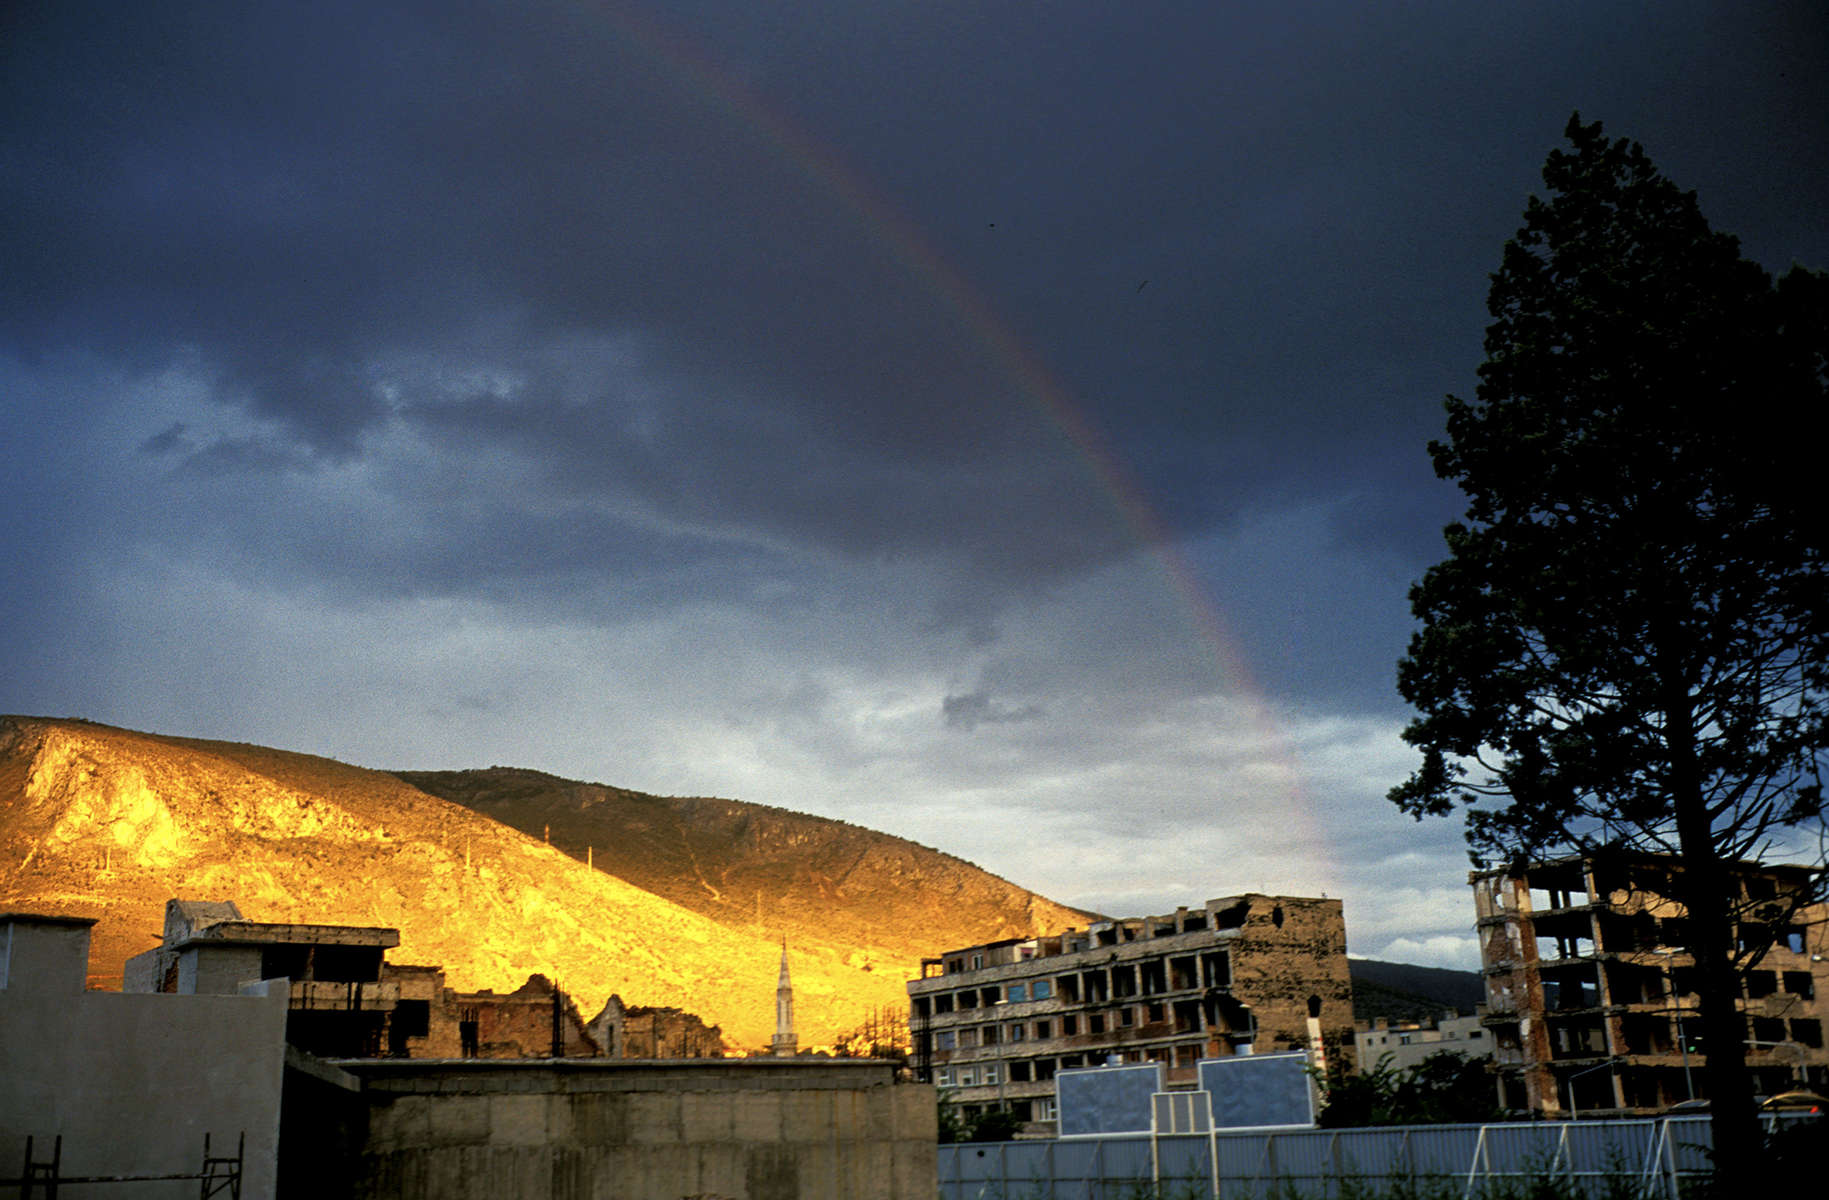 At the end of a stormy day, the setting sun causes a rainbow to arch over the hills around the town of Mostar, the scene of some of the most vicious fighting during the war. At lower right, stand destroyed buildings that still line the street which marked the frontline between Muslim and Croat forces.